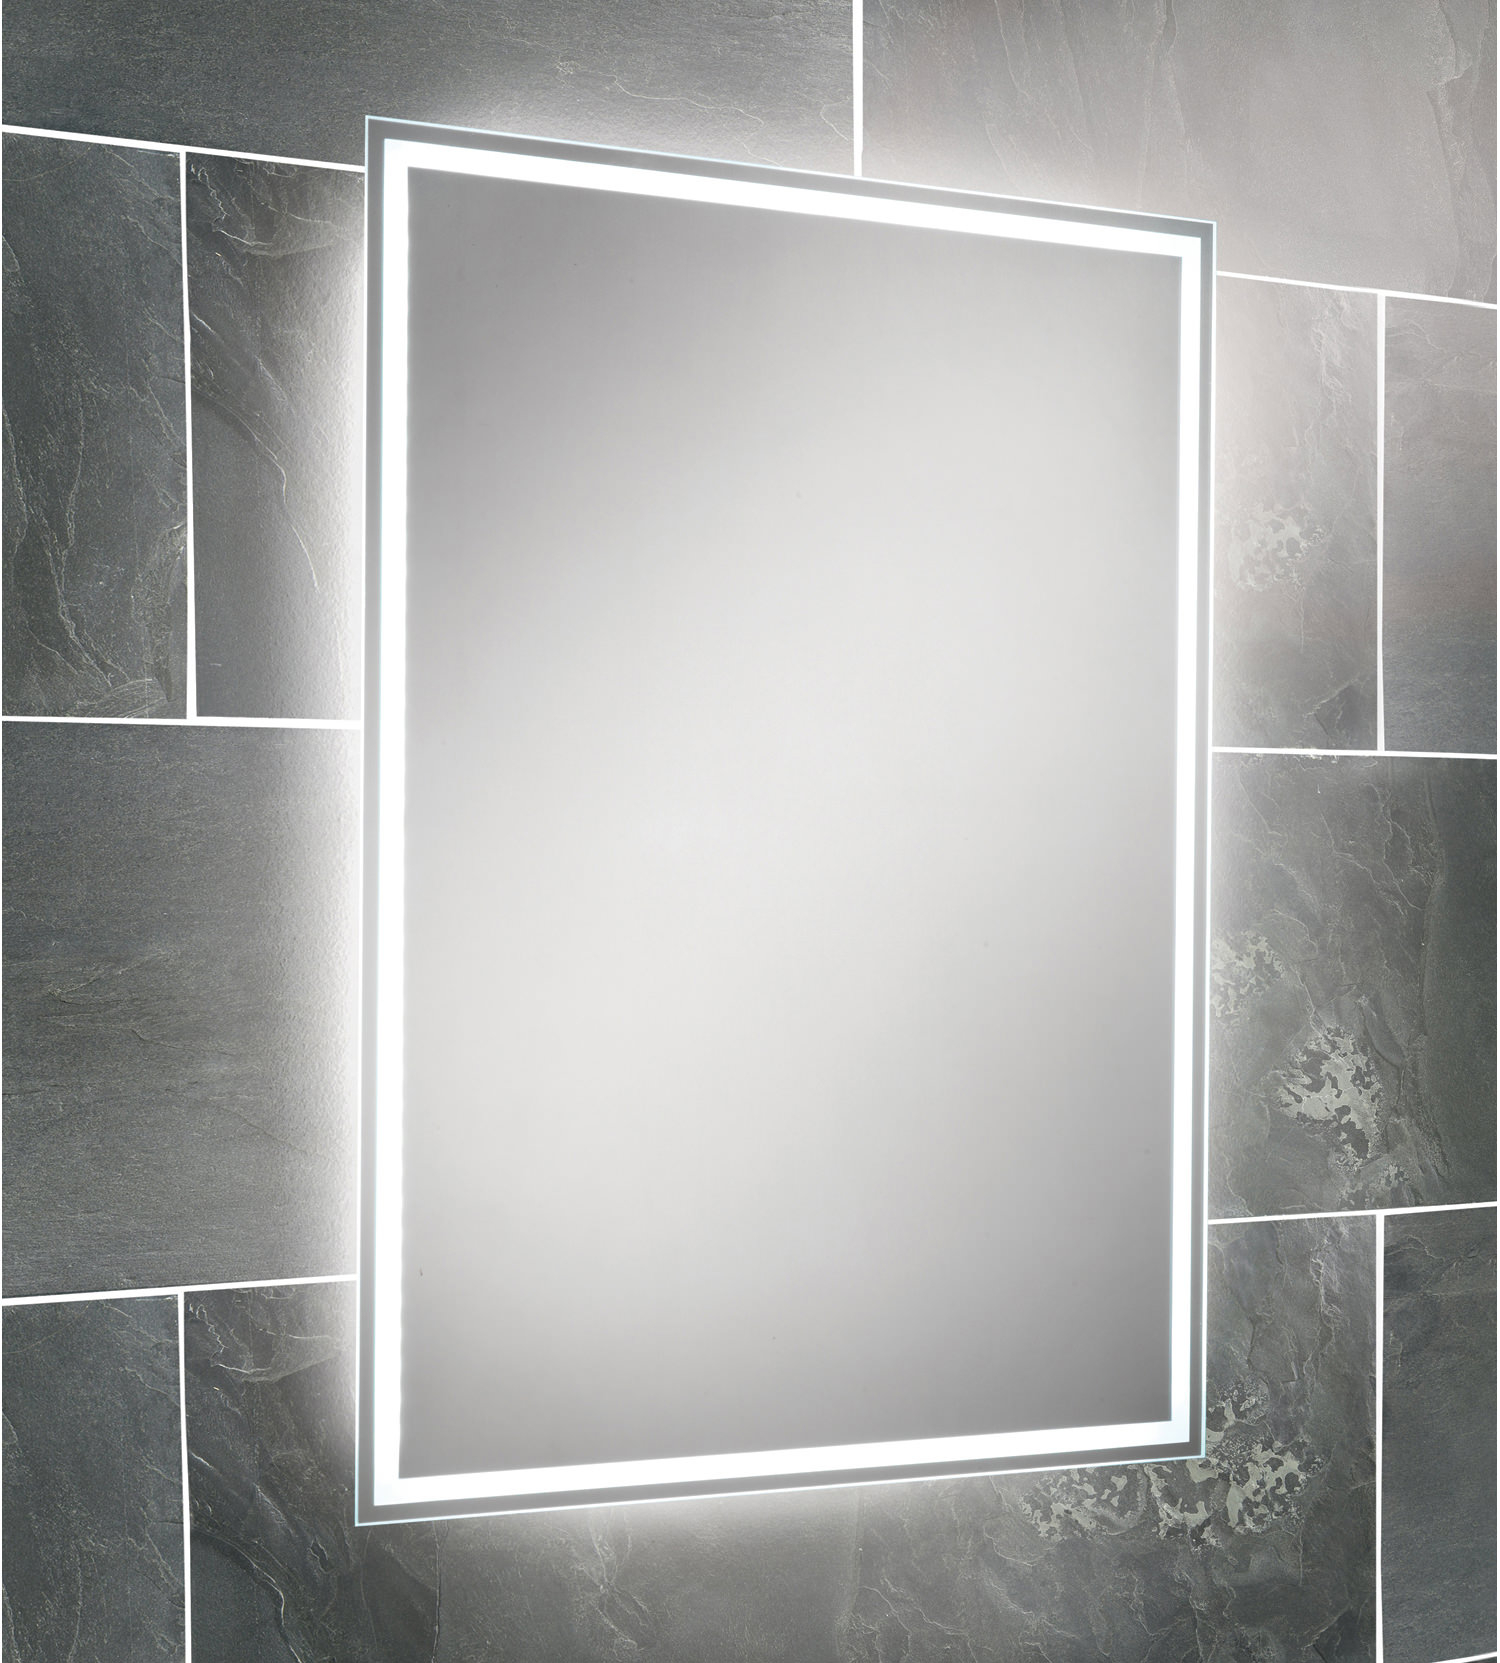 Pj Matthews Accessories Finishing Touches Lighting Mirrors within dimensions 1500 X 1663